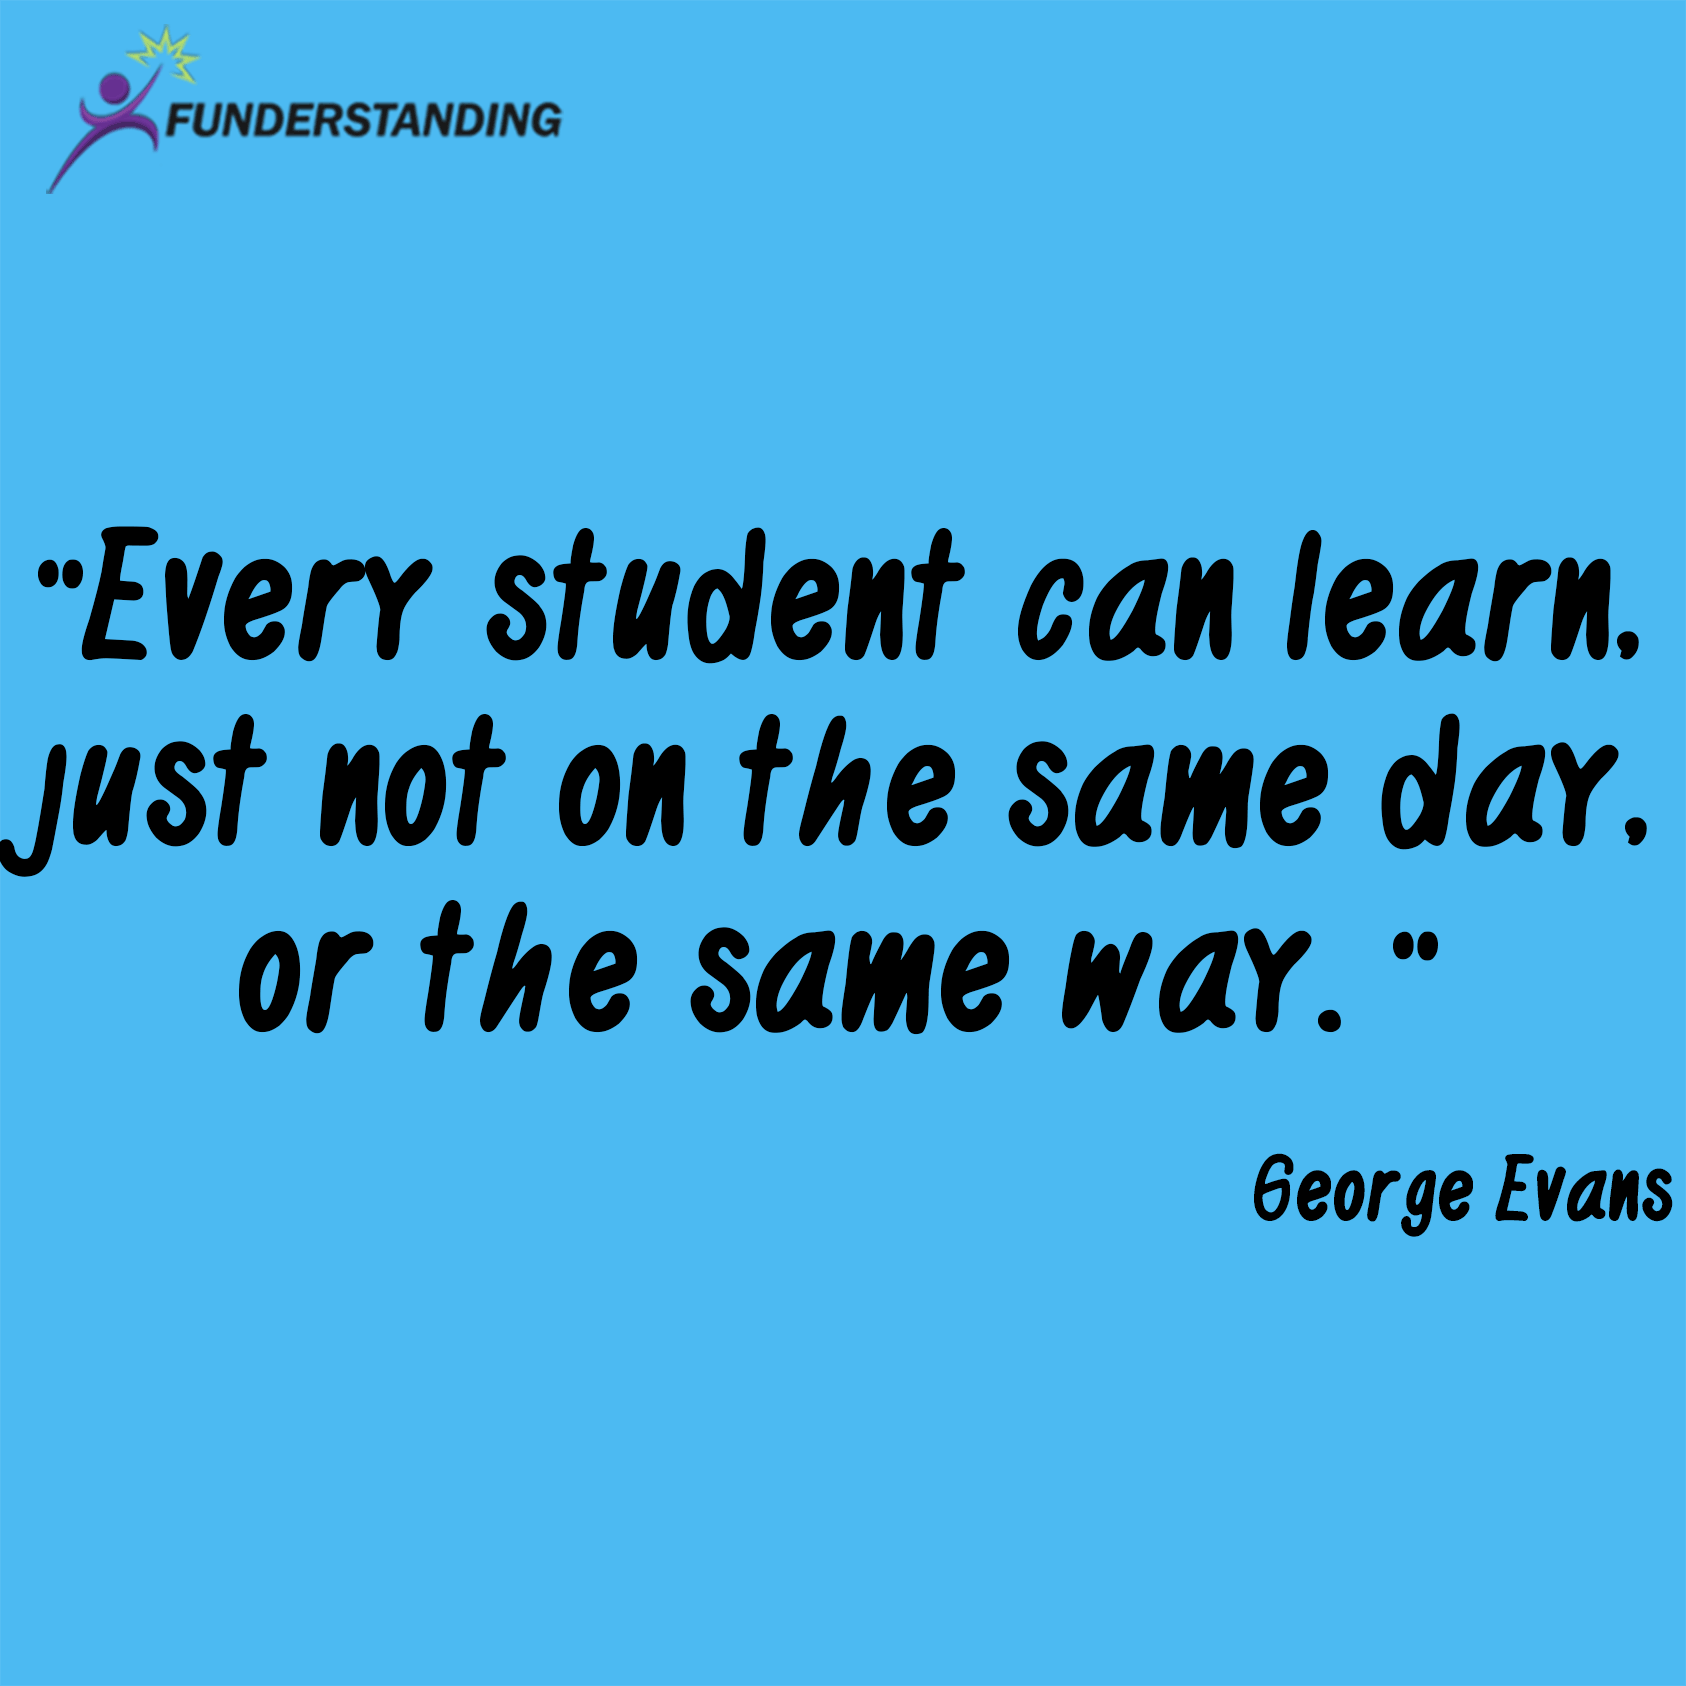 Educational Quotes Funderstanding Education Curriculum